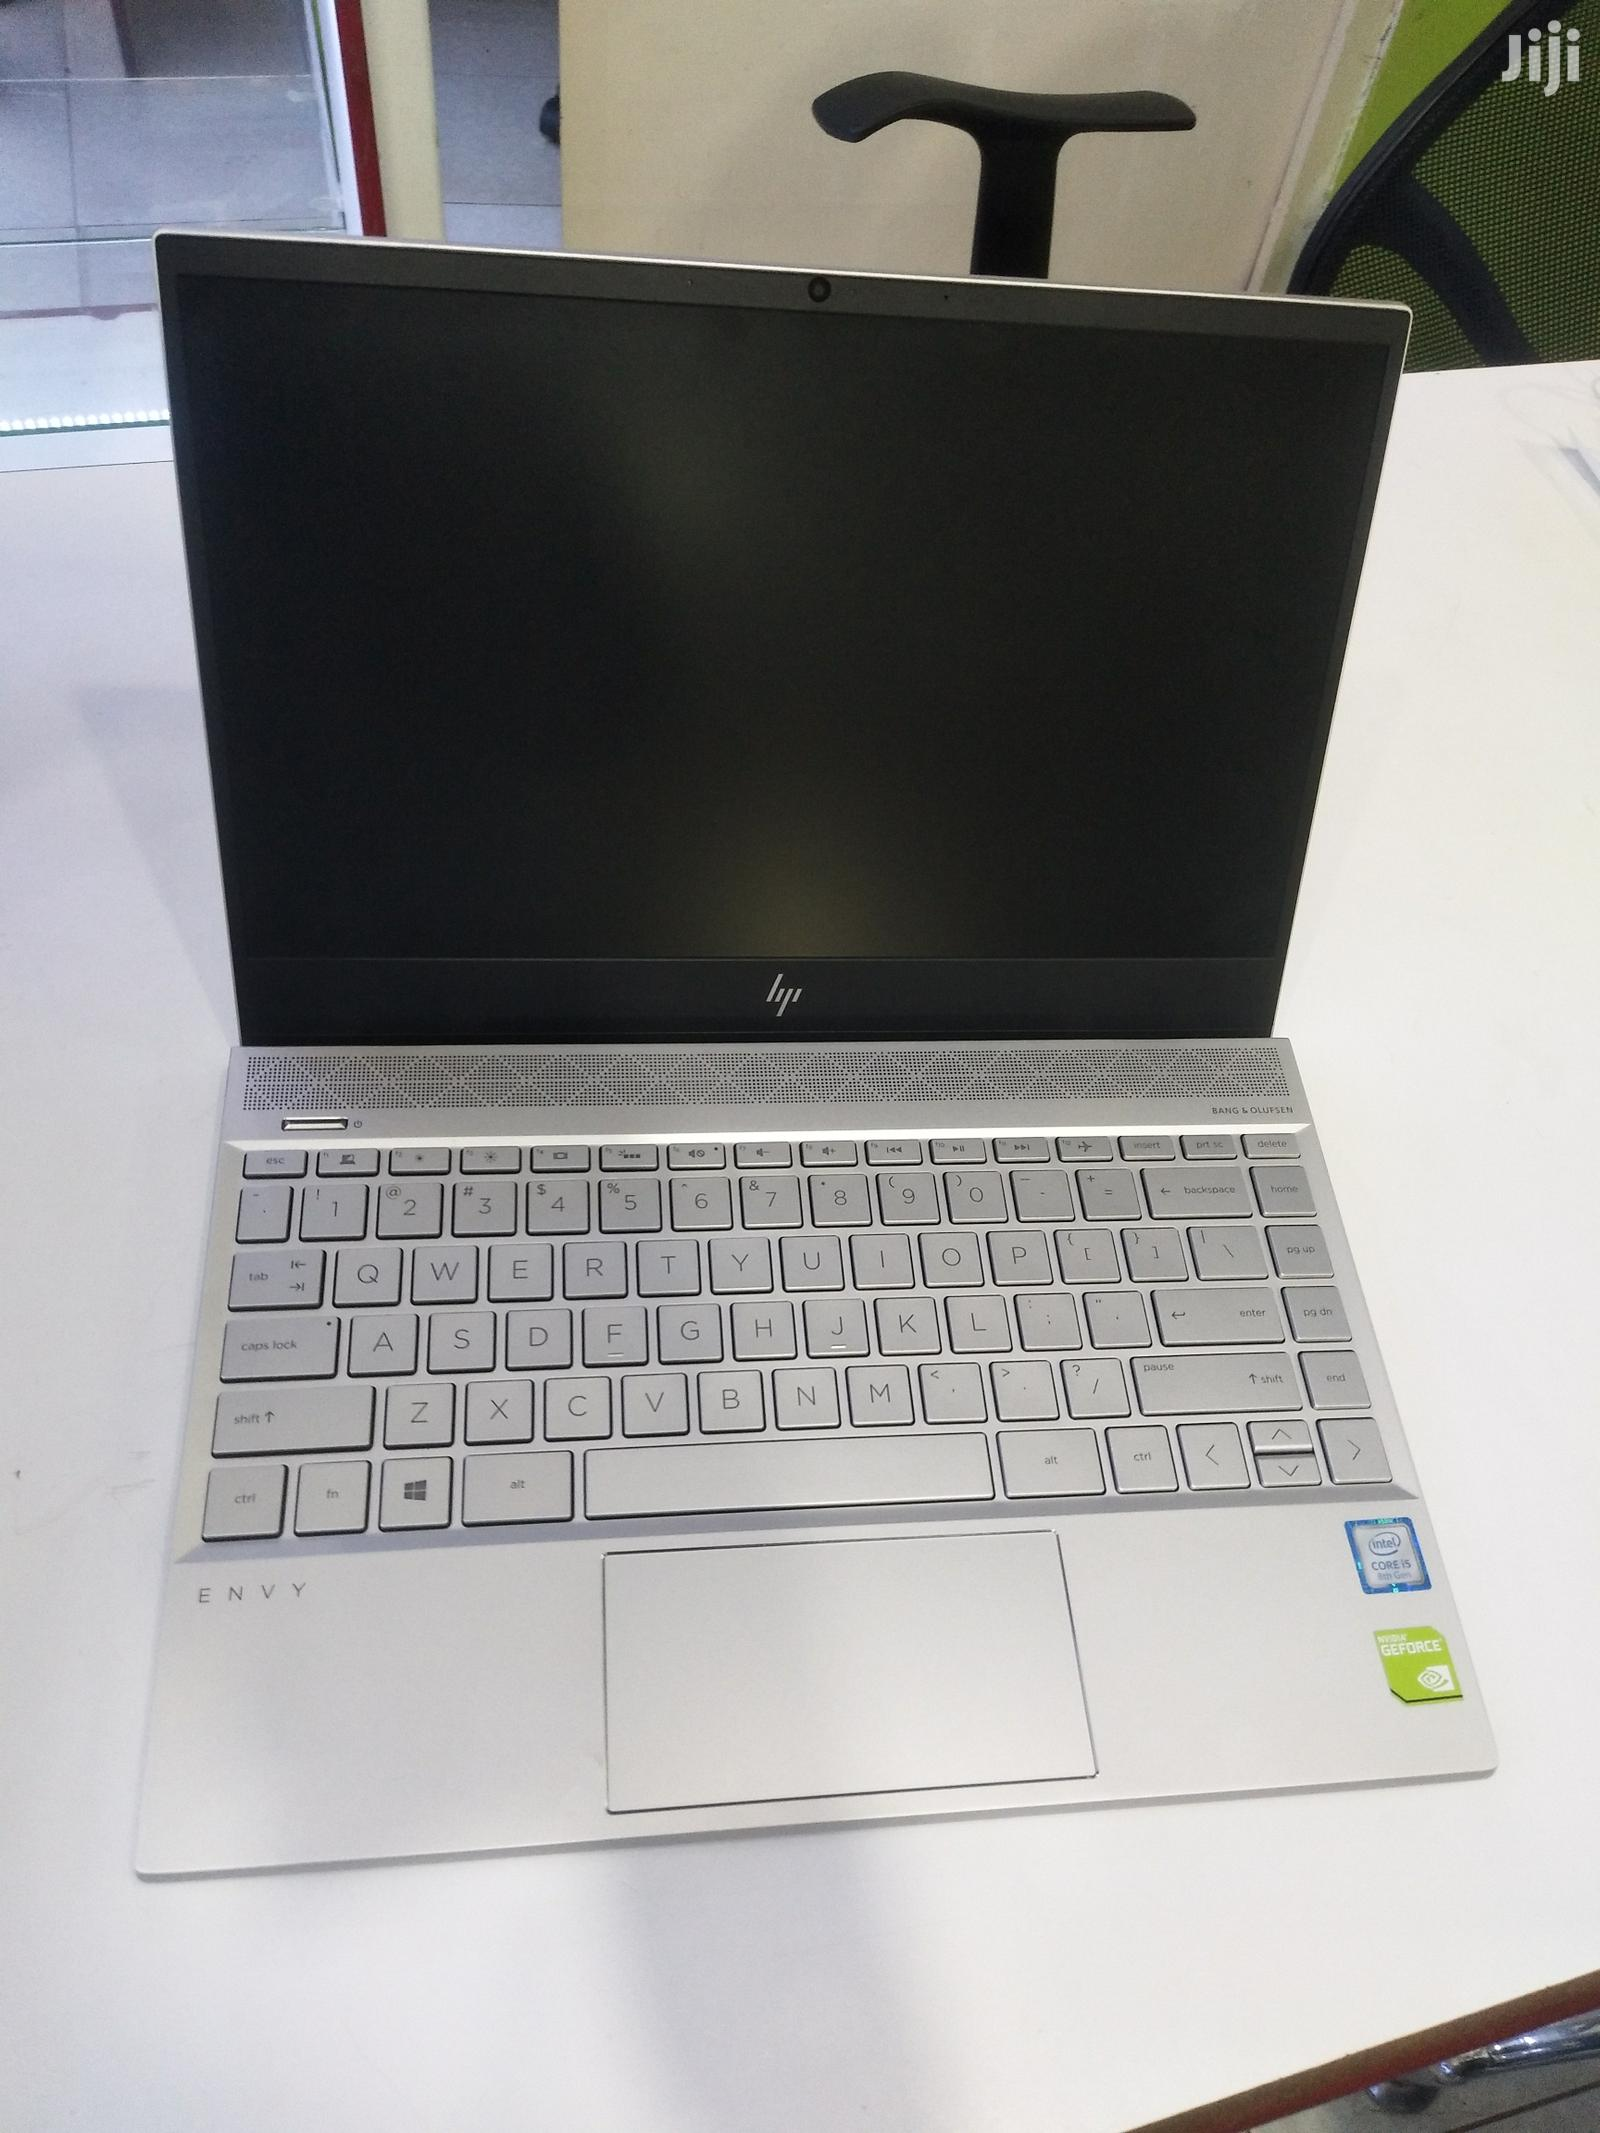 New Laptop HP Envy 13 8GB Intel Core i5 SSHD (Hybrid) 500GB | Laptops & Computers for sale in Kampala, Central Region, Uganda